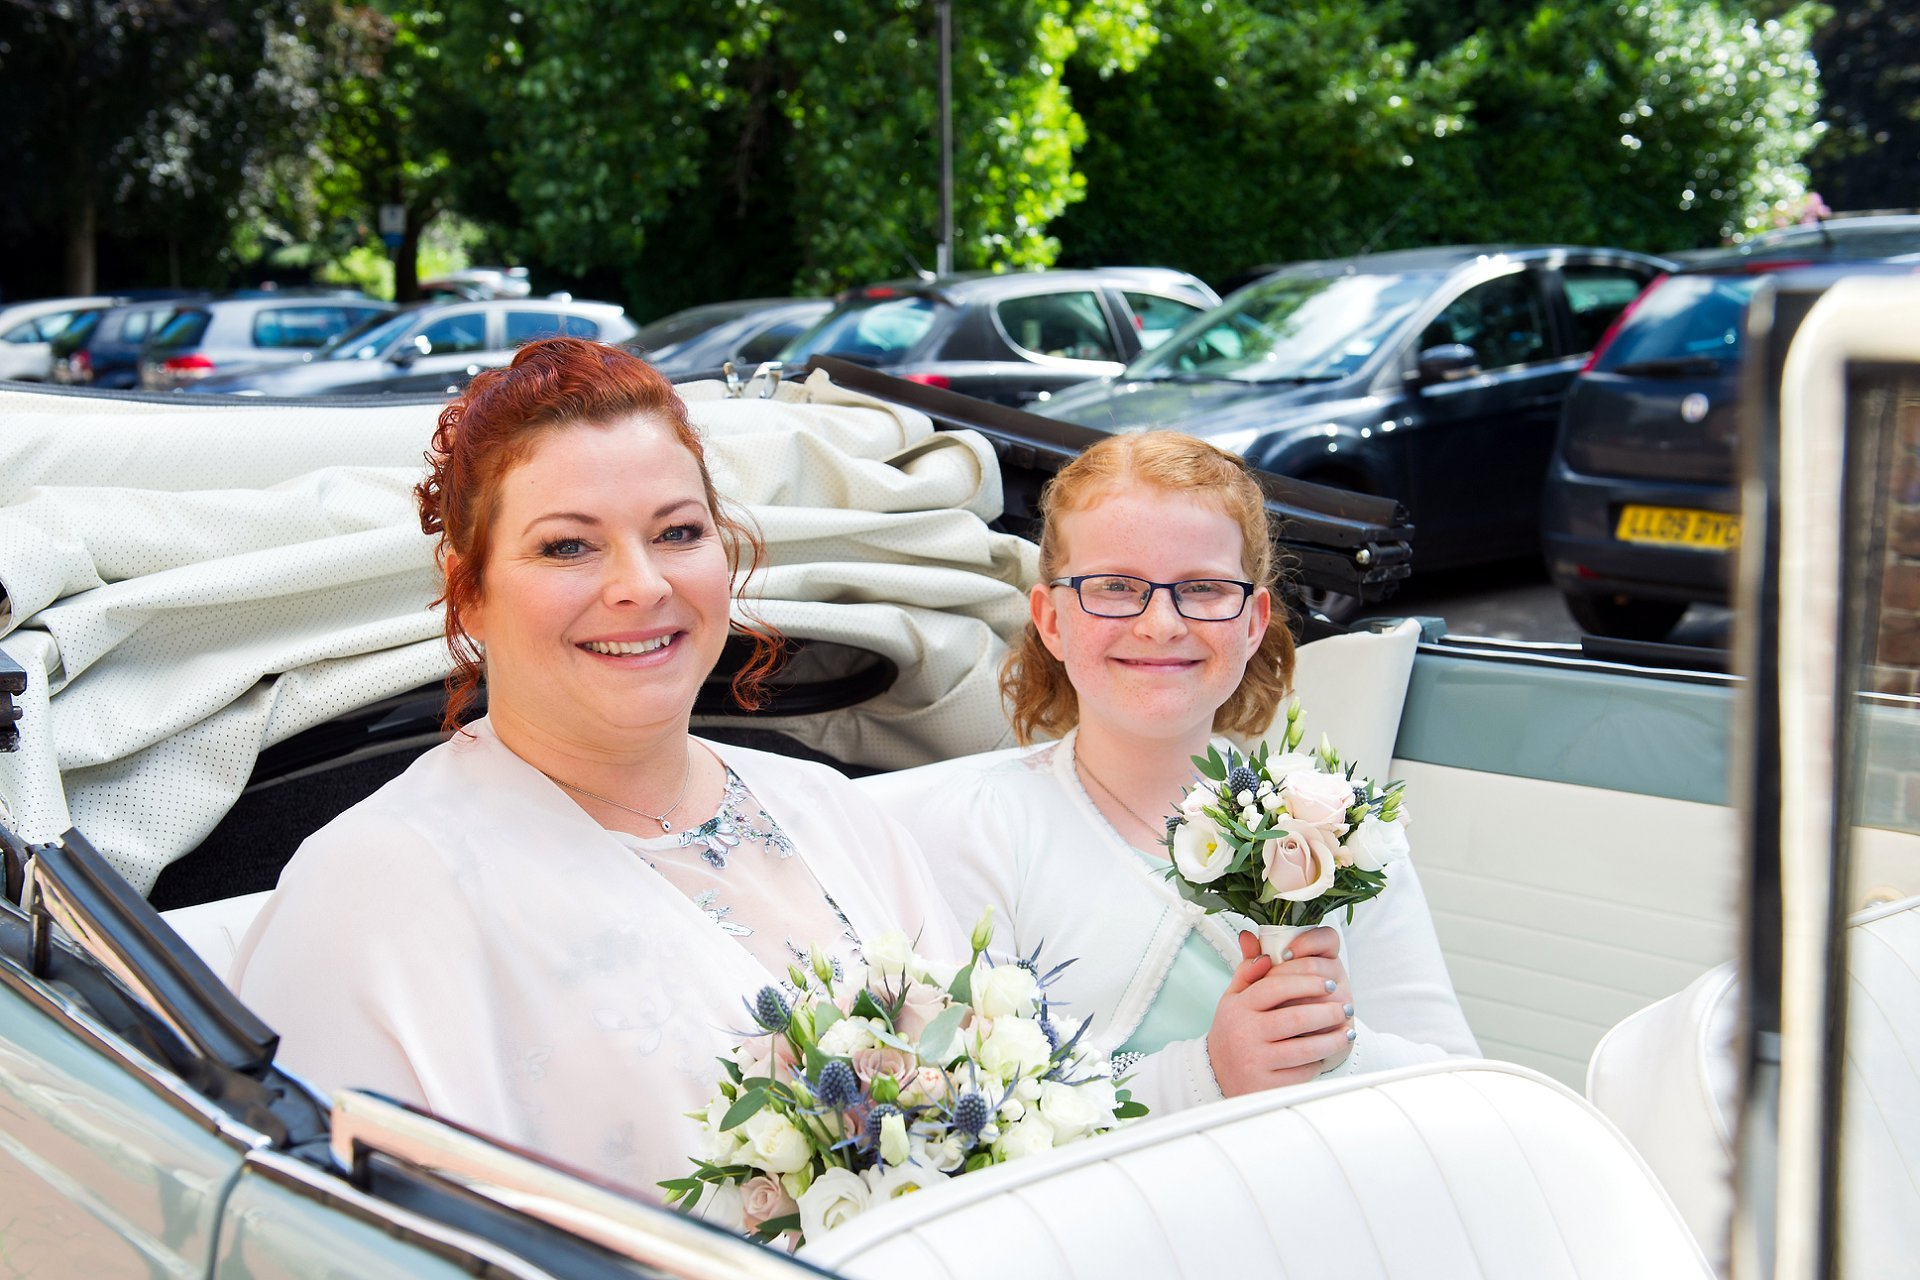 The bride and her daughter arrive in VW Beetle Marsha from Bowfield Hire at Park House in Horsham